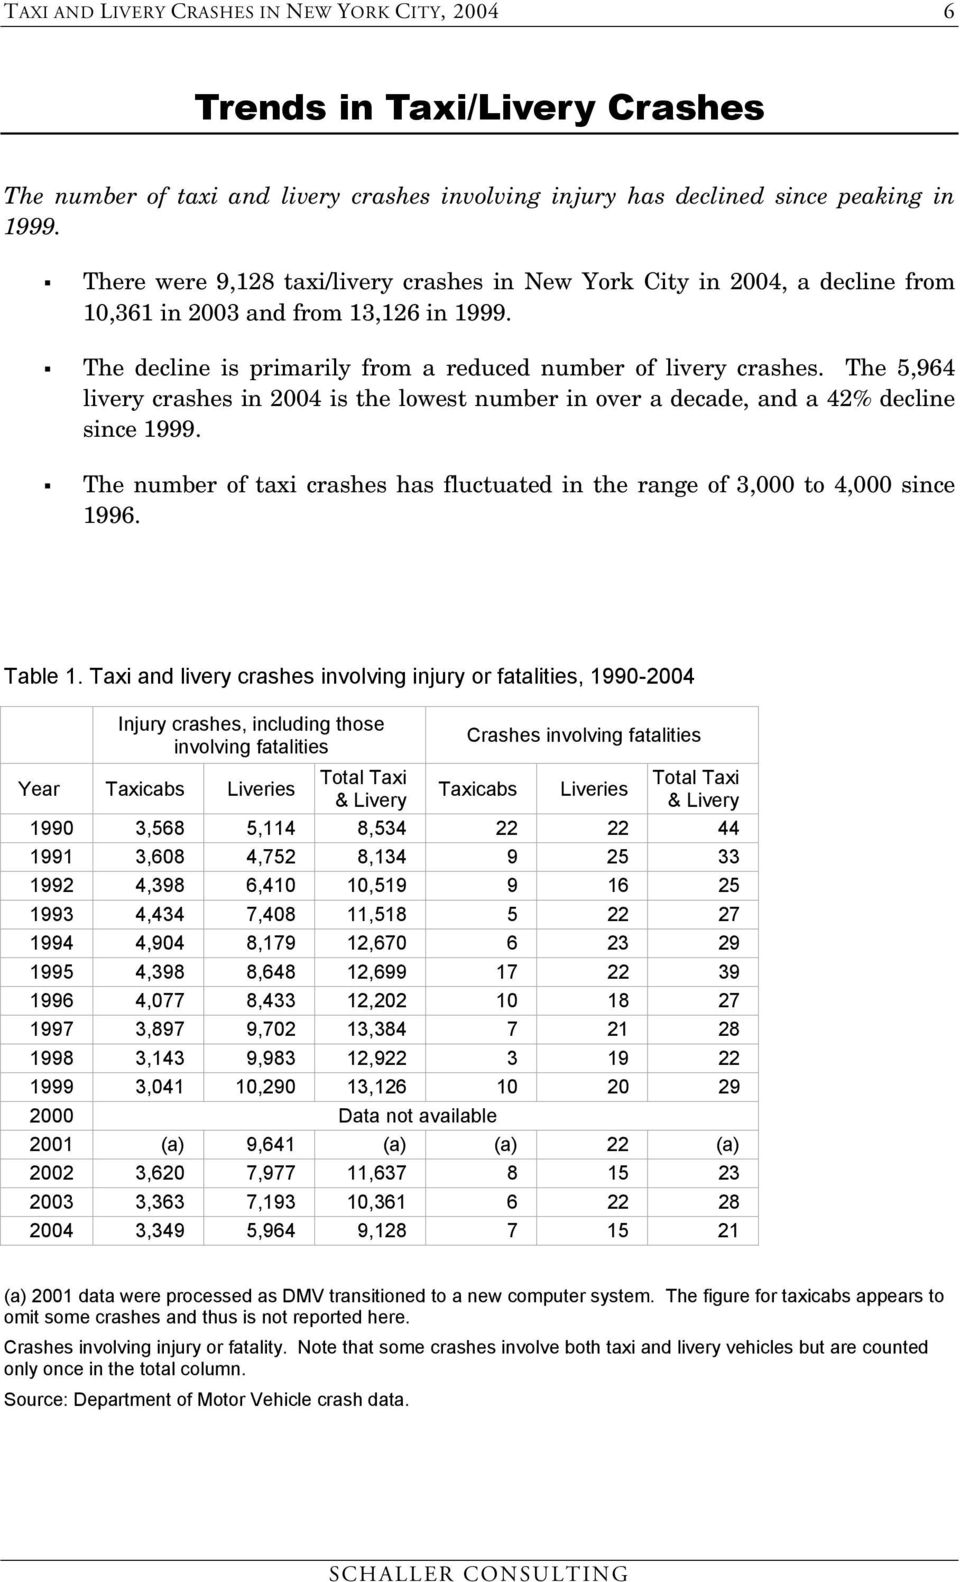 The 5,964 livery crashes in 2004 is the lowest number in over a decade, and a 42% decline since 1999. The number of taxi crashes has fluctuated in the range of 3,000 to 4,000 since 1996. Table 1.